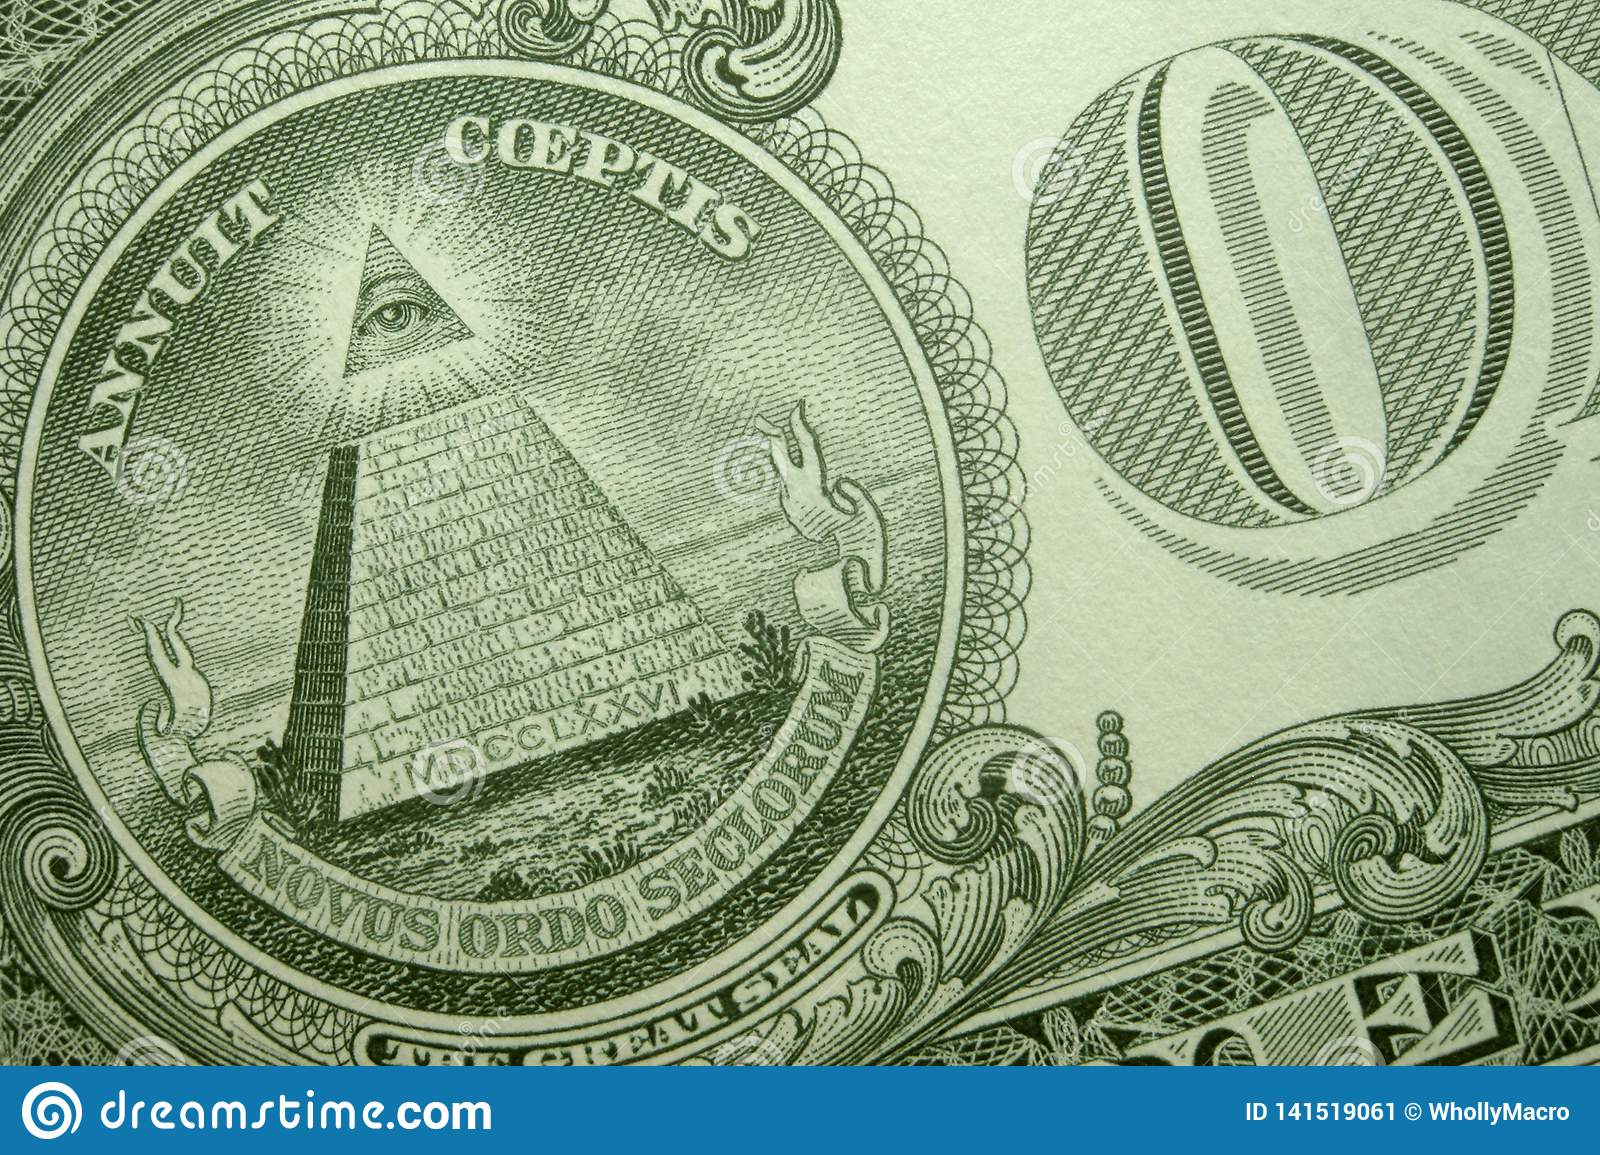 Pyramid, eye of providence, and O of ONE on back of an American single.